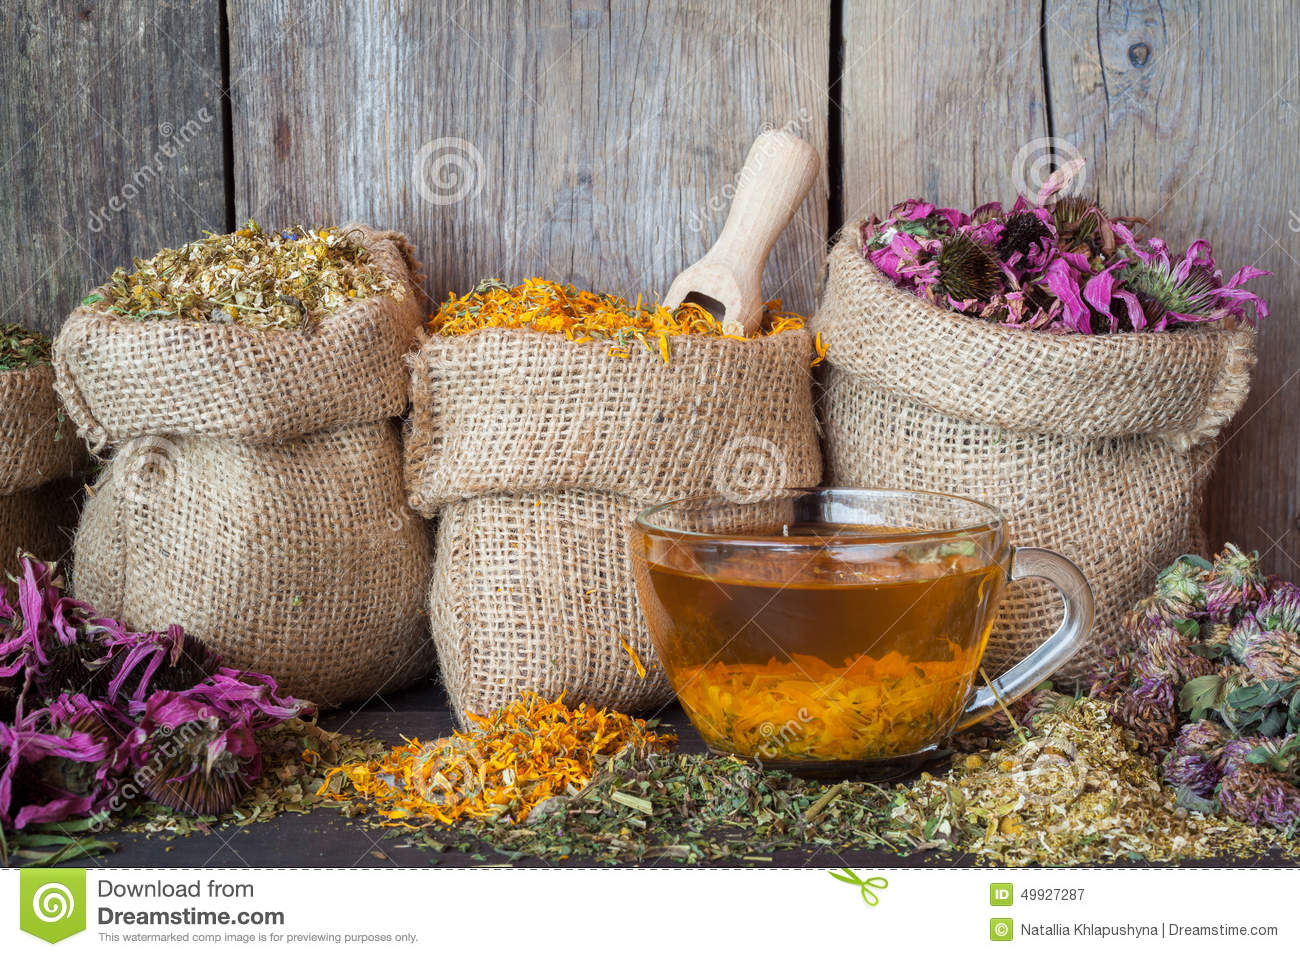 Healing herbs in hessian bags and healthy tea cup